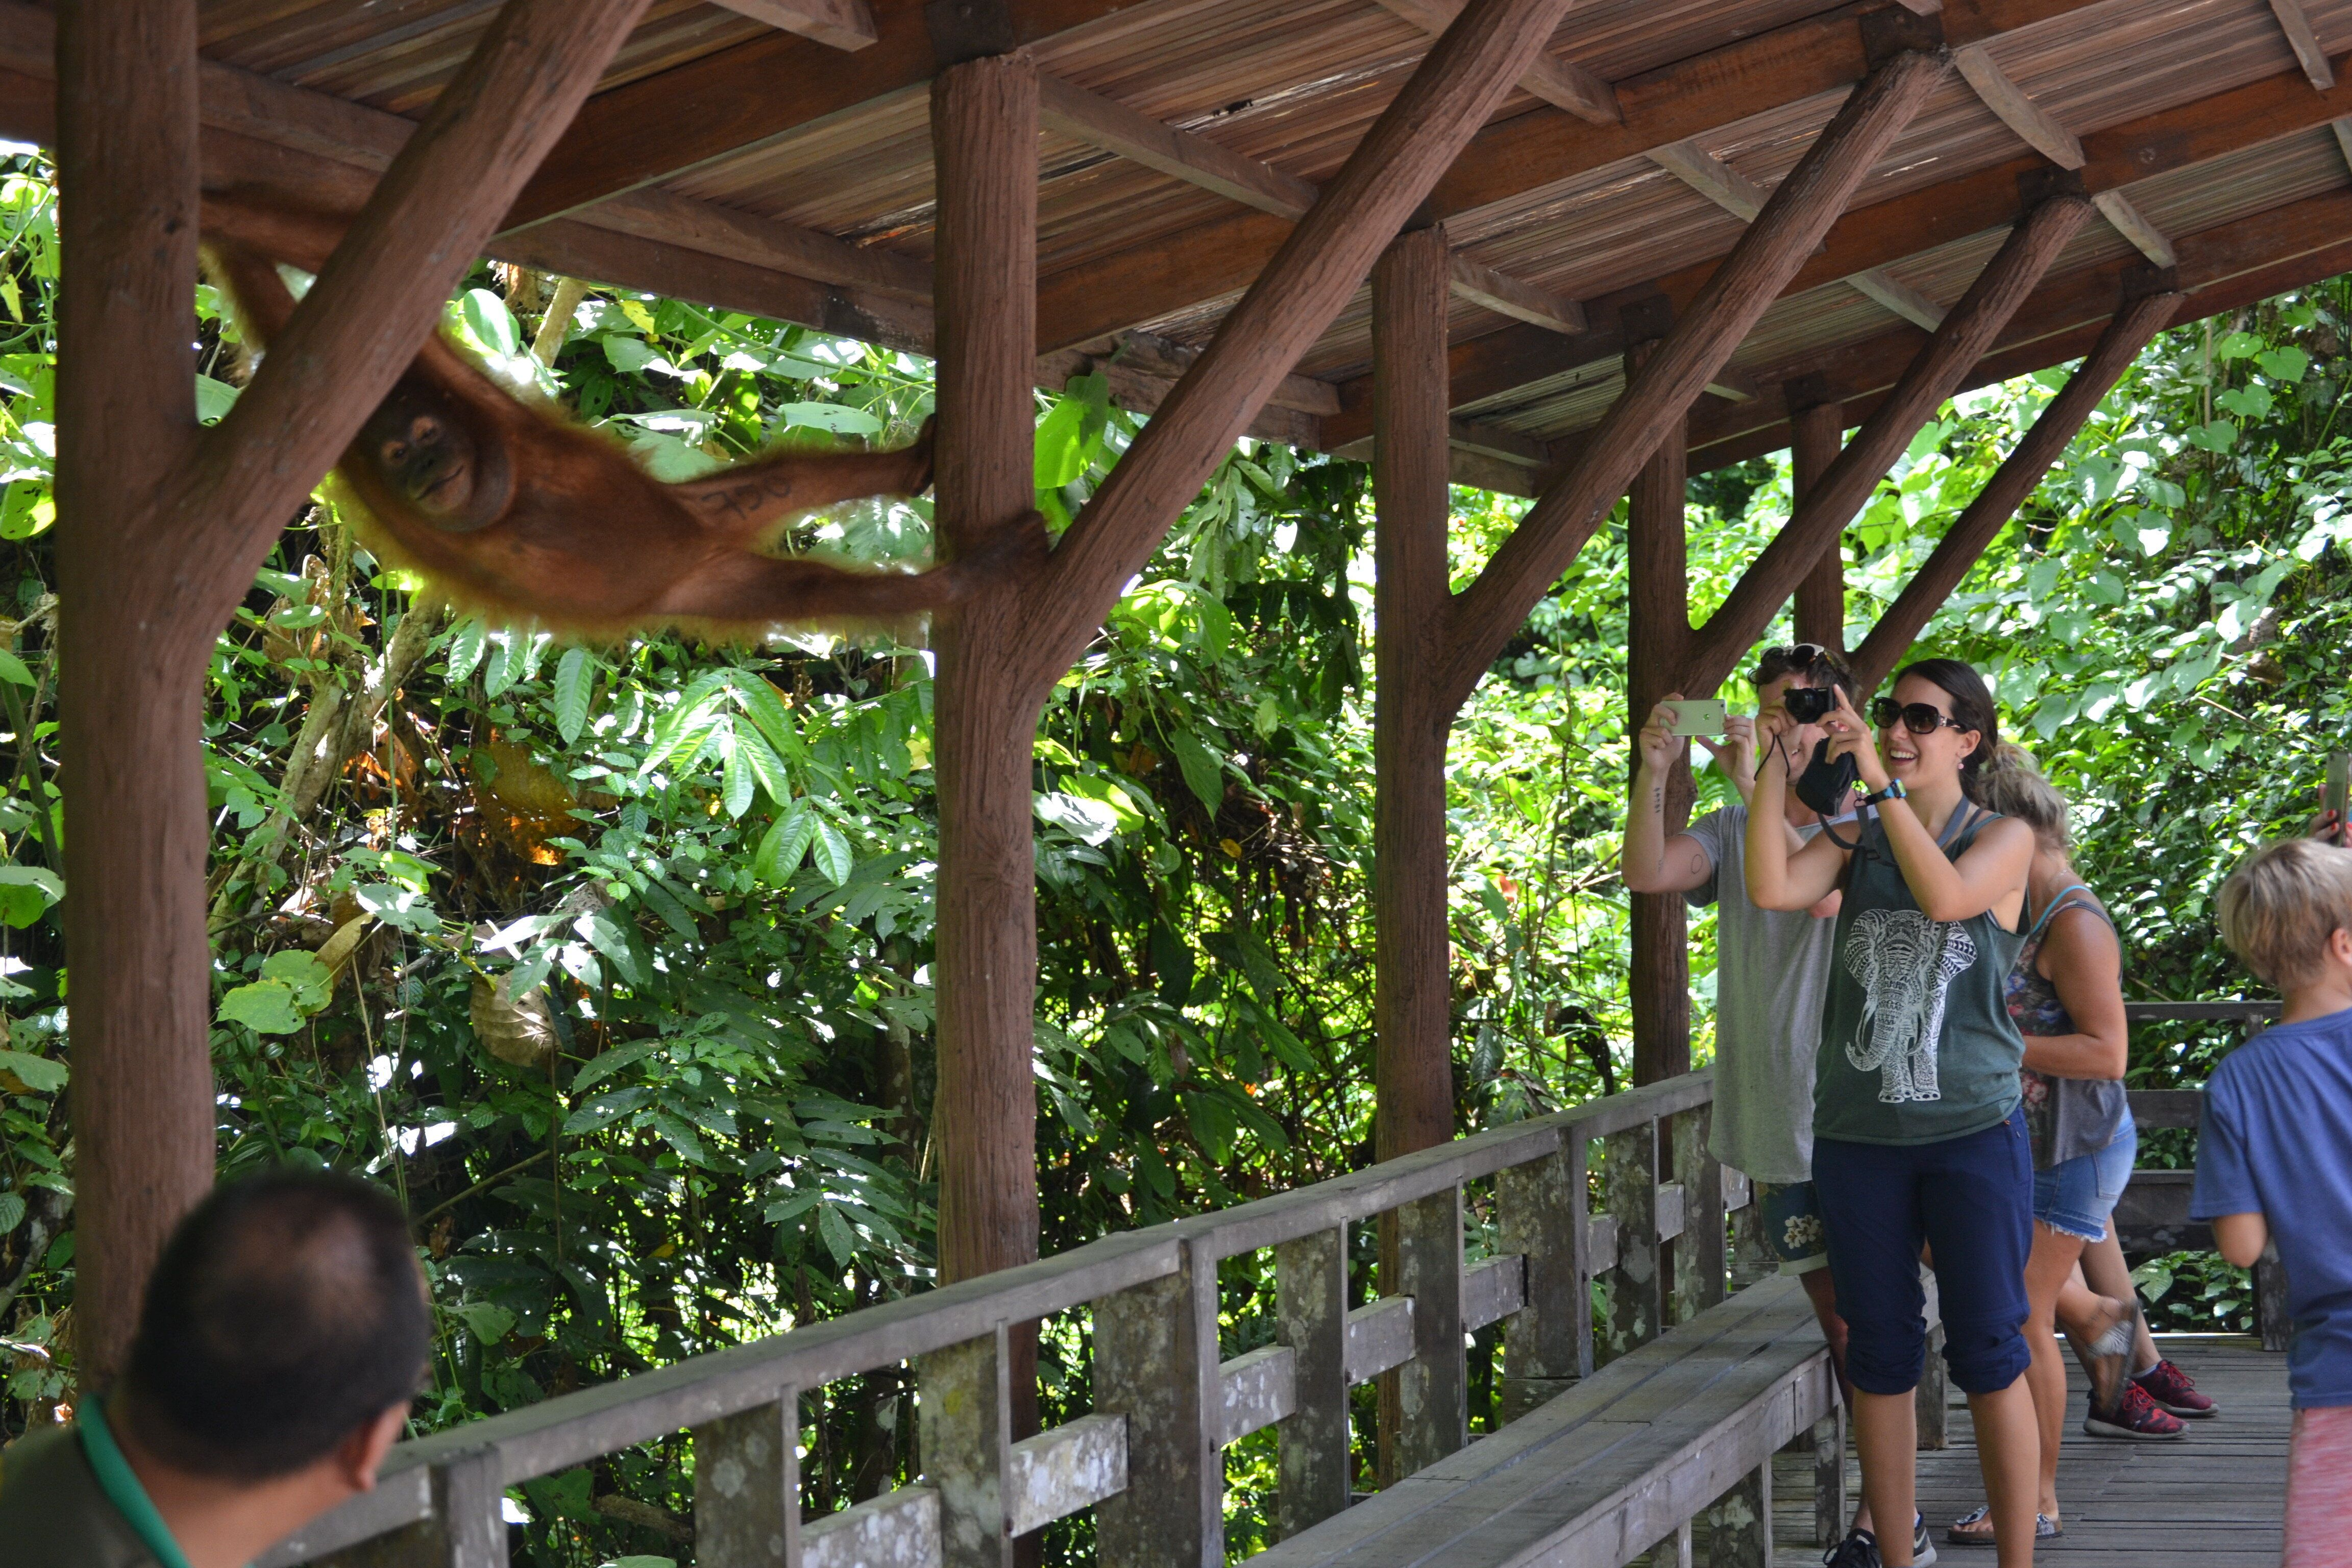 Visitors get right up close to an orangutan at the Bornean Sun Bear Conservation Centre in Malaysia.